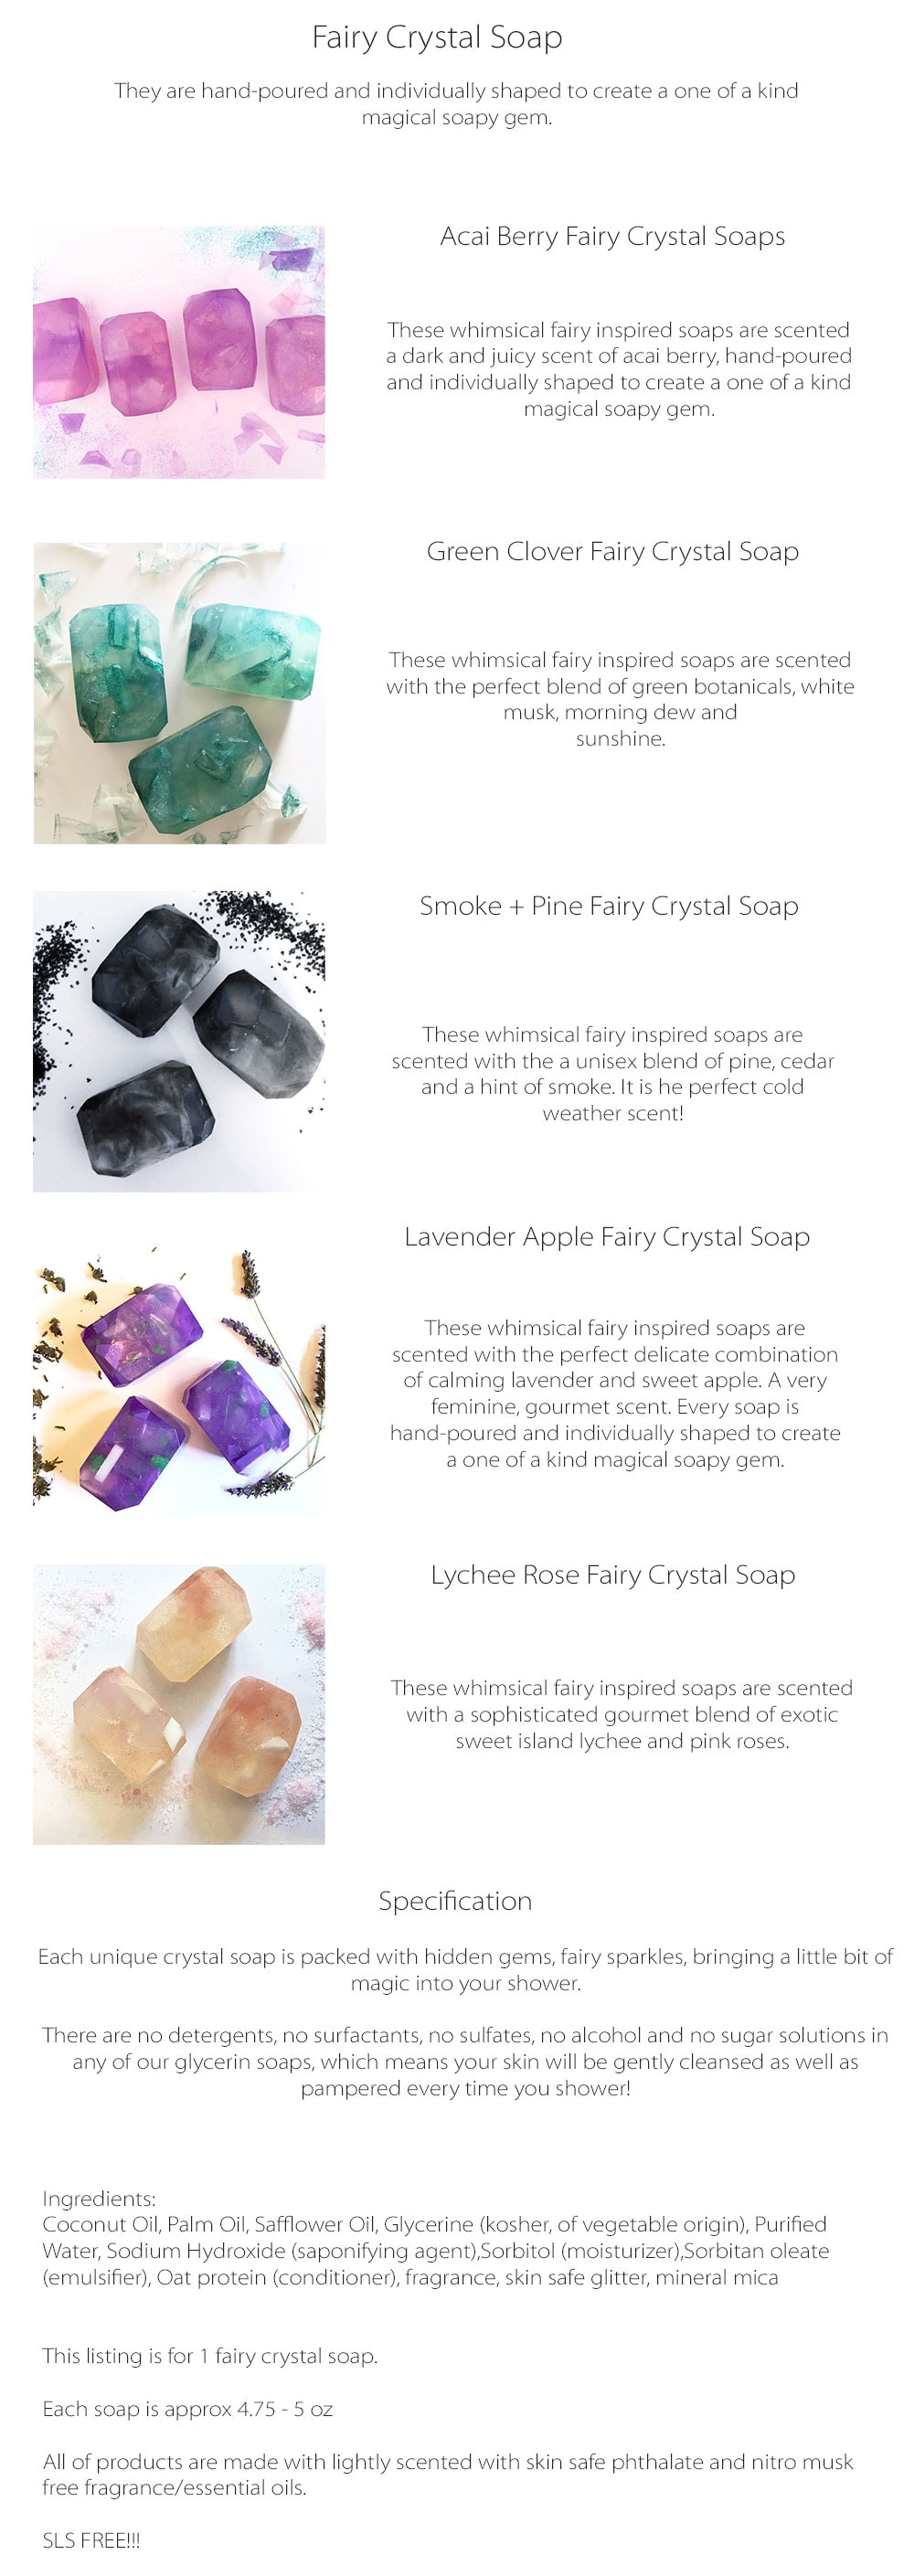 Fairy Crystal Soap Whimsical Fairy Inspired Soaps